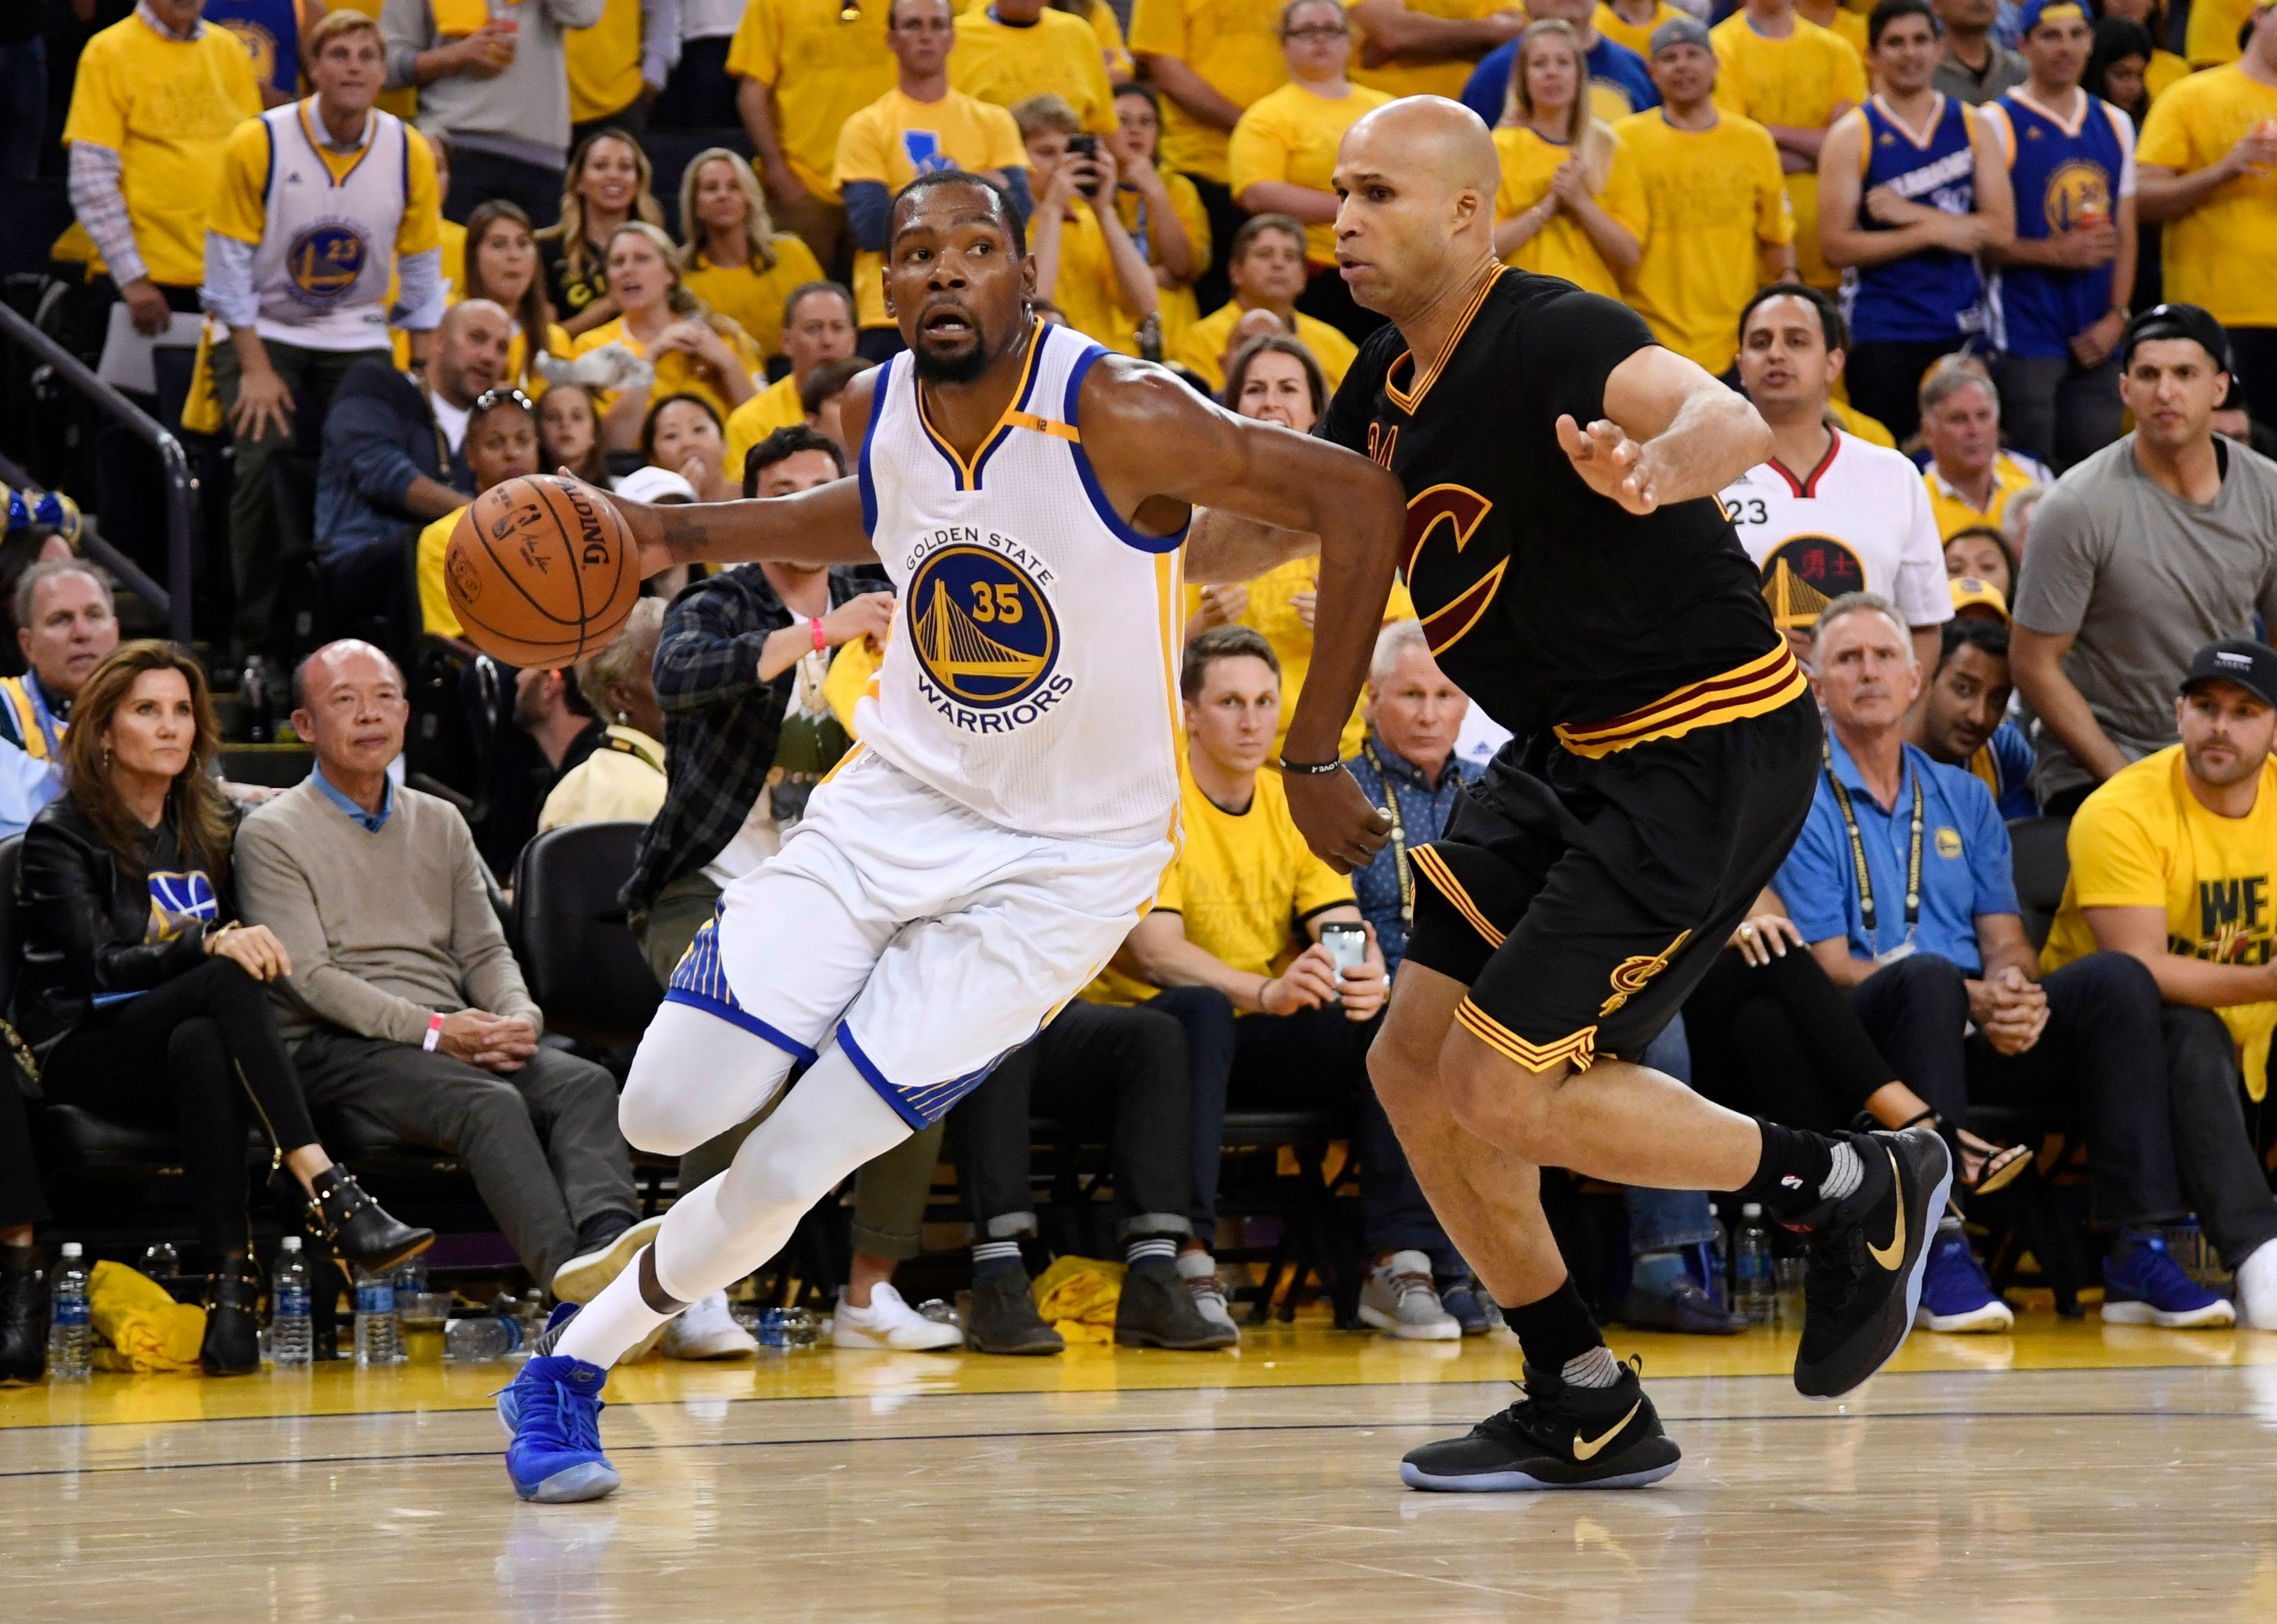 Jun 12, 2017; Oakland, CA, USA; Golden State Warriors forward Kevin Durant (35) drives past Cleveland Cavaliers forward Richard Jefferson (24) during the first half in game five of the 2017 NBA Finals at Oracle Arena. Mandatory Credit: Kyle Terada-USA TODAY Sports